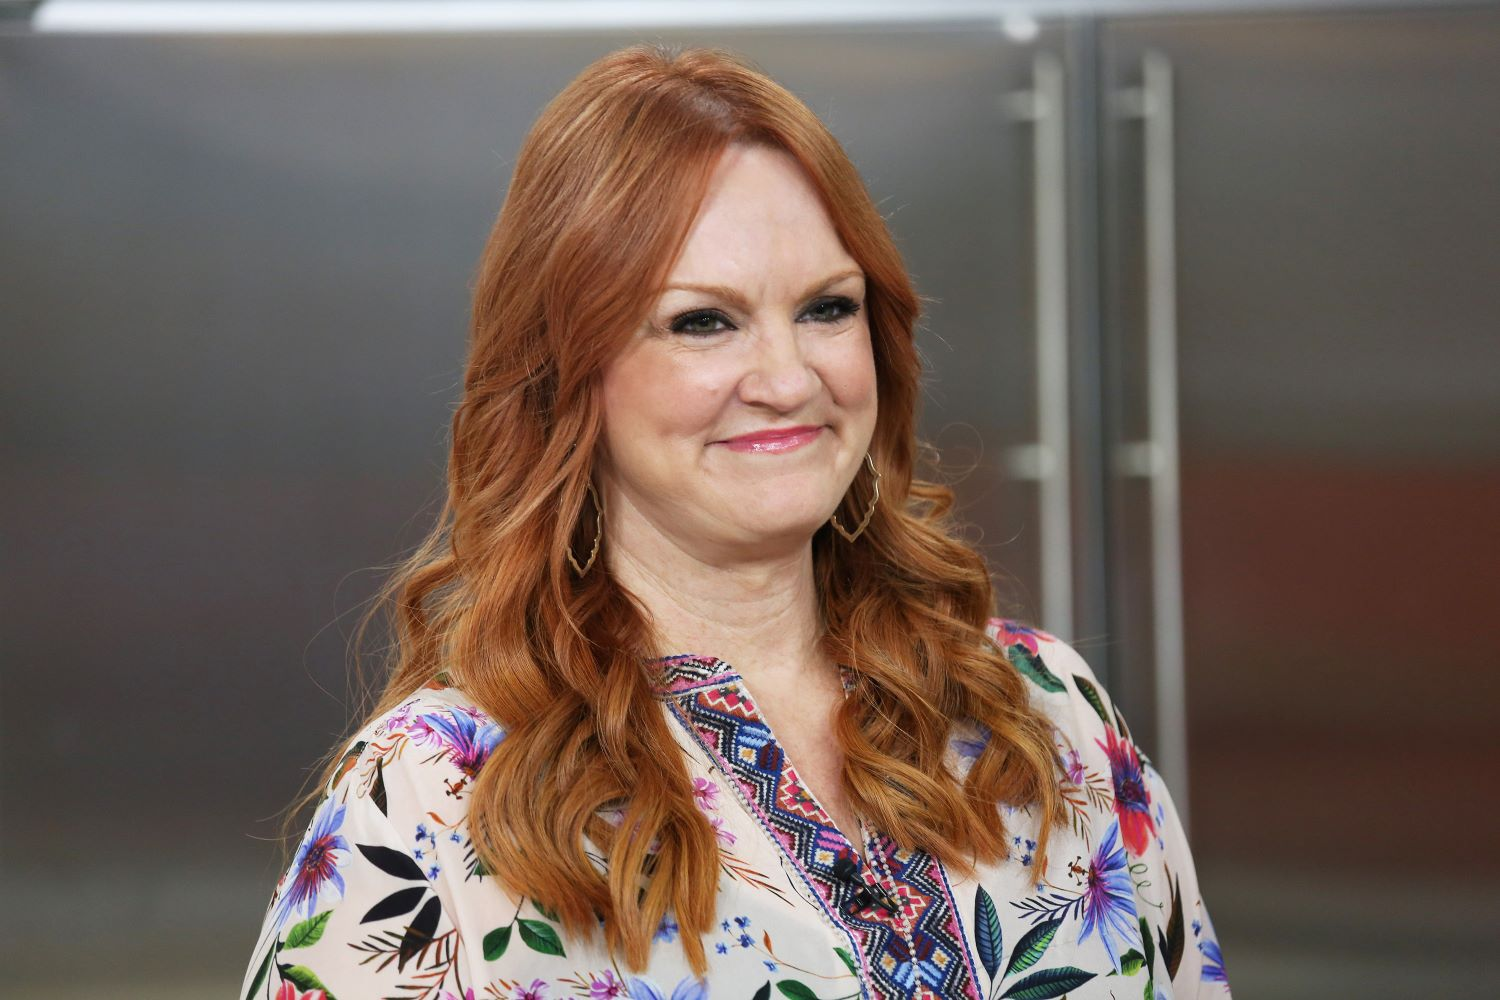 'The Pioneer Woman' Ree Drummond on Tuesday October 22, 2019